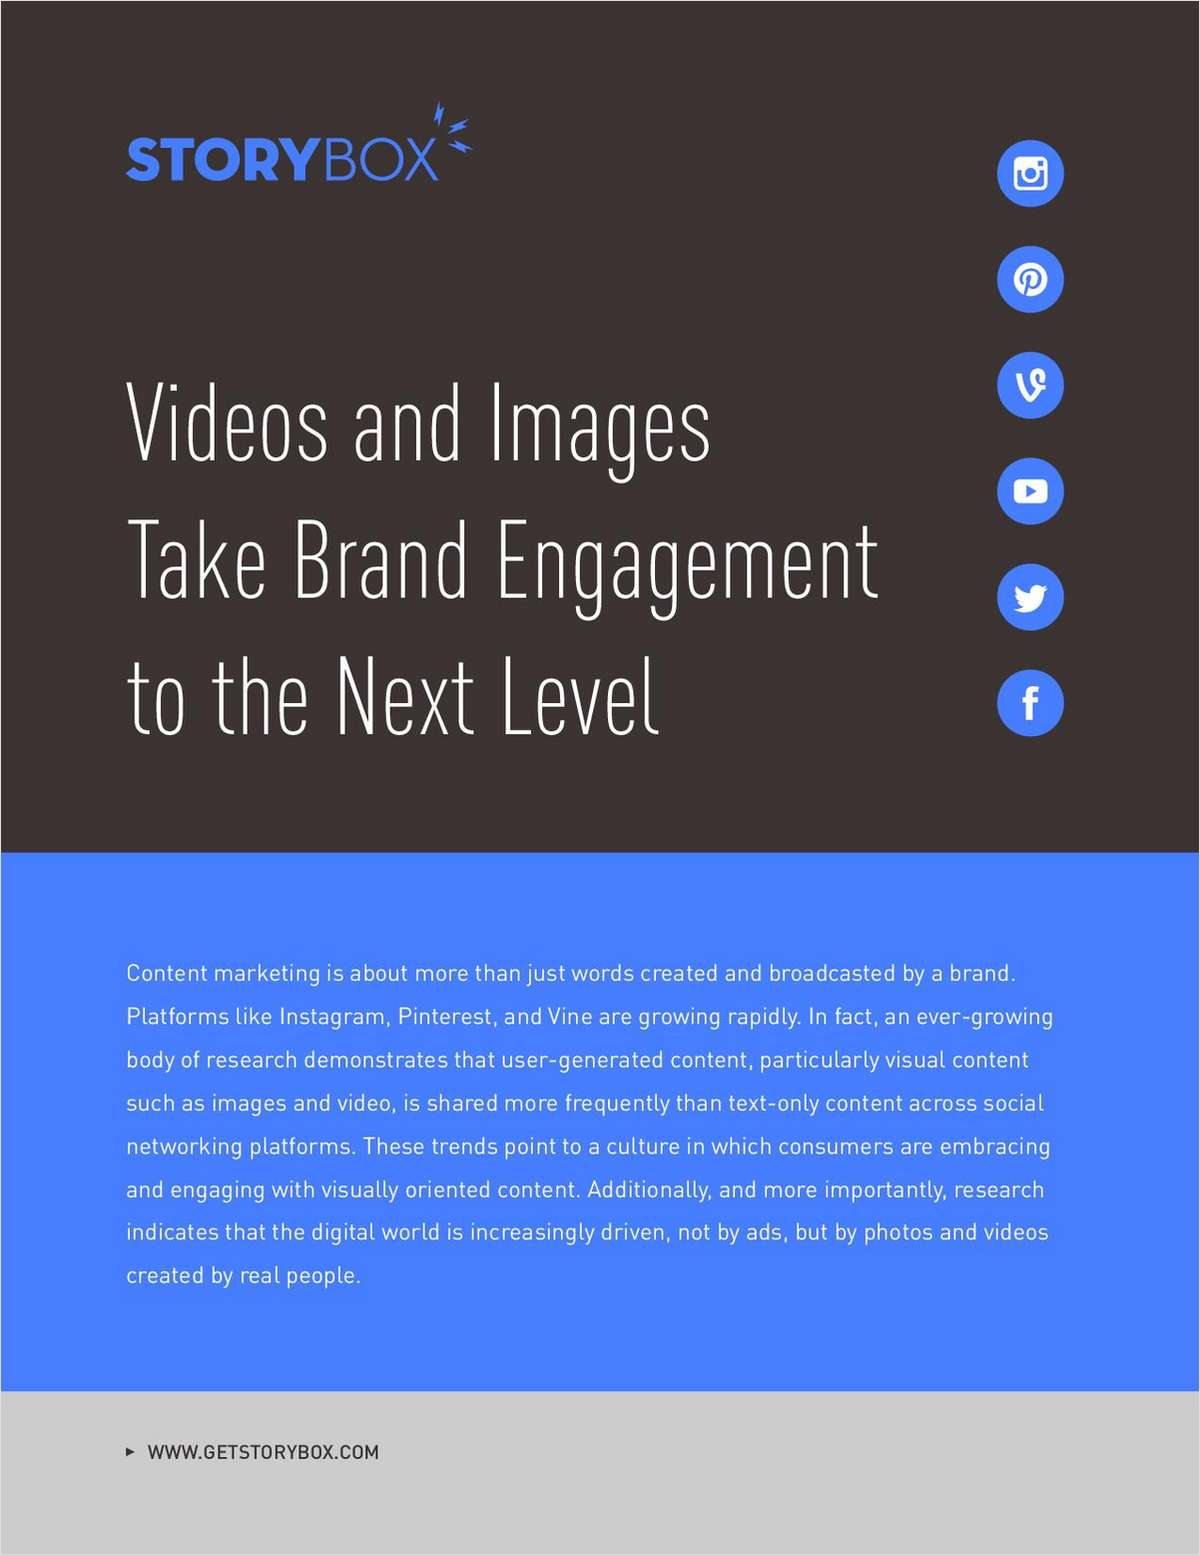 Videos and Images Take Brand Engagement to the Next Level